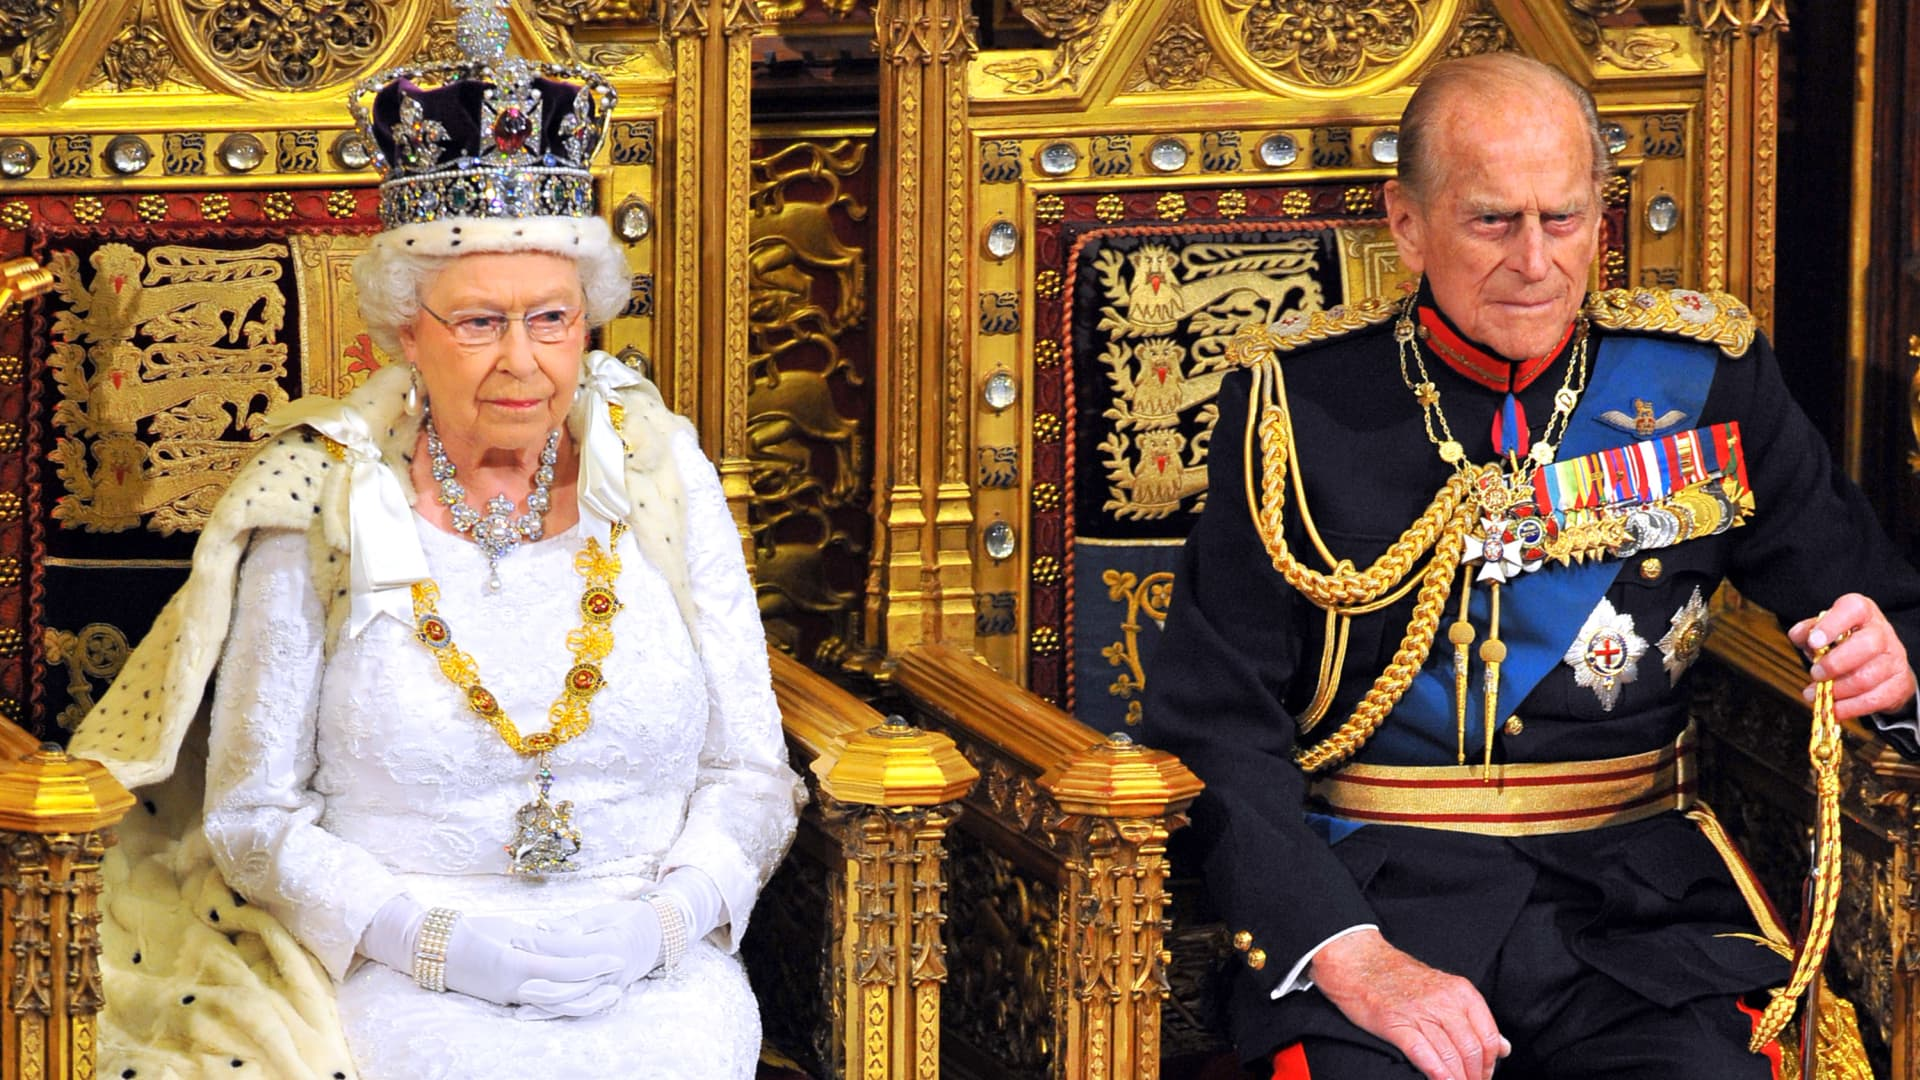 Queen Elizabeth II sits with Prince Philip as she delivers her speech during opening ceremony of Parliament in the House of Lords at Westminster on June 4, 2014, in London.